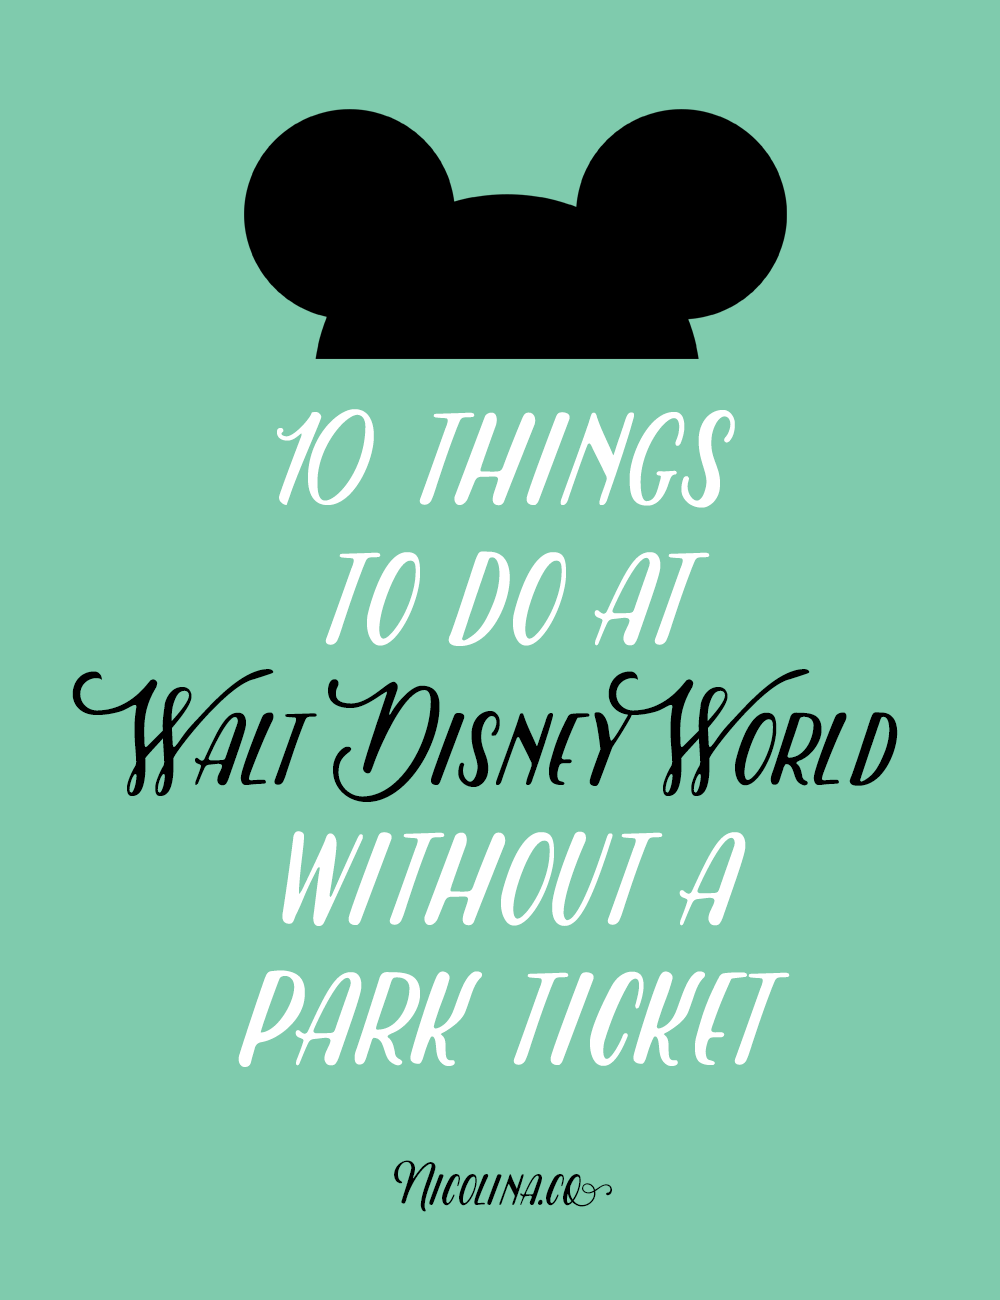 10 Things to do at WDW without a park ticket